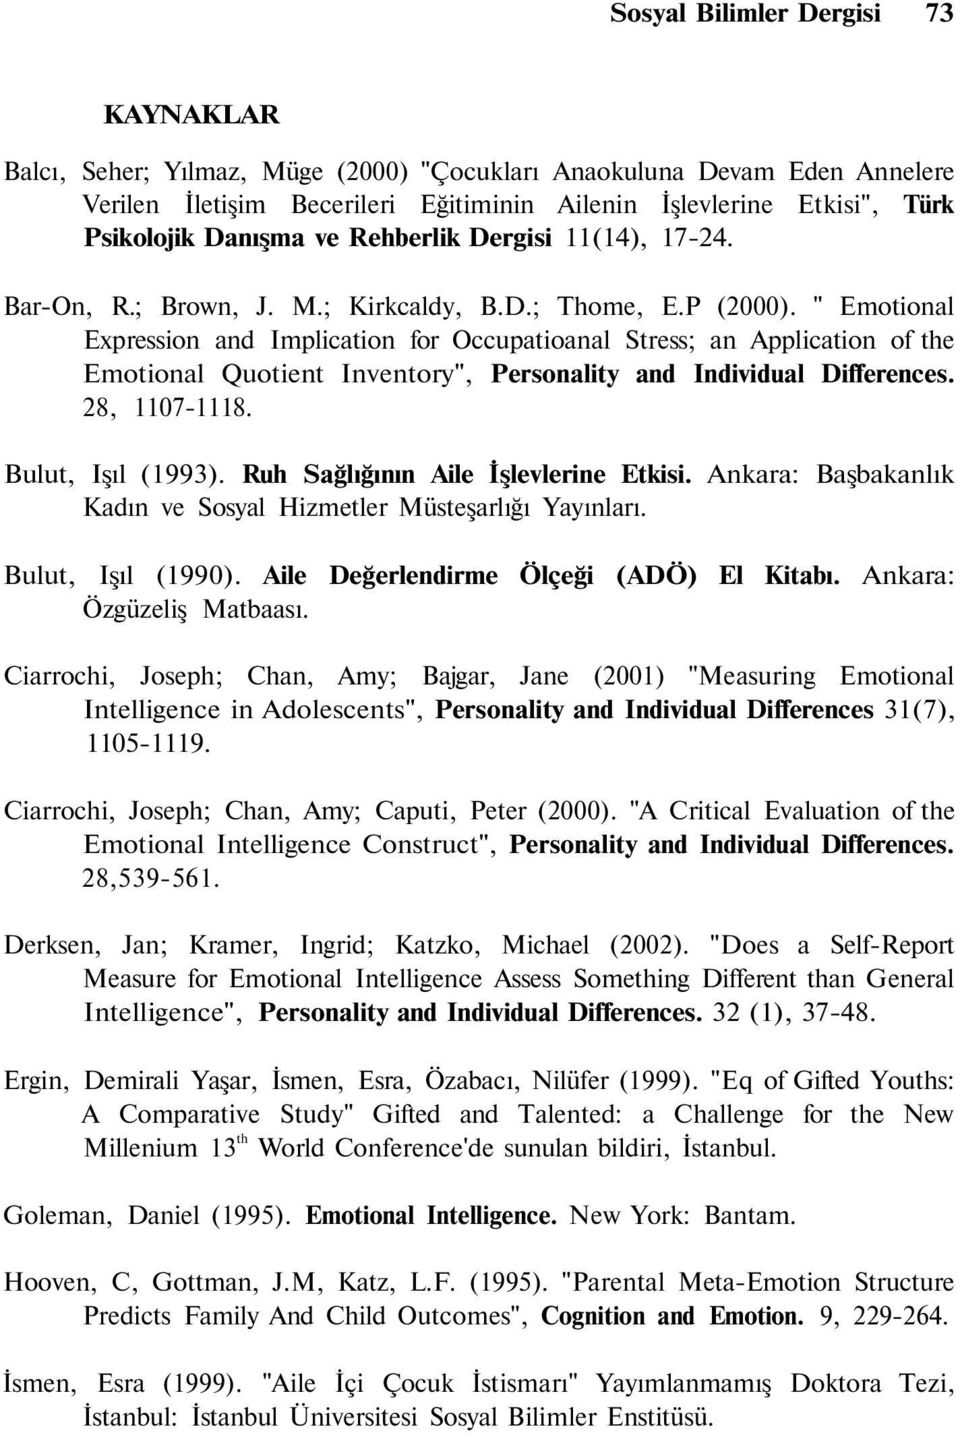 """ Emotional Expression and Implication for Occupatioanal Stress; an Application of the Emotional Quotient Inventory"", Personality and Individual Differences. 28, 1107-1118. Bulut, Işıl (1993)."